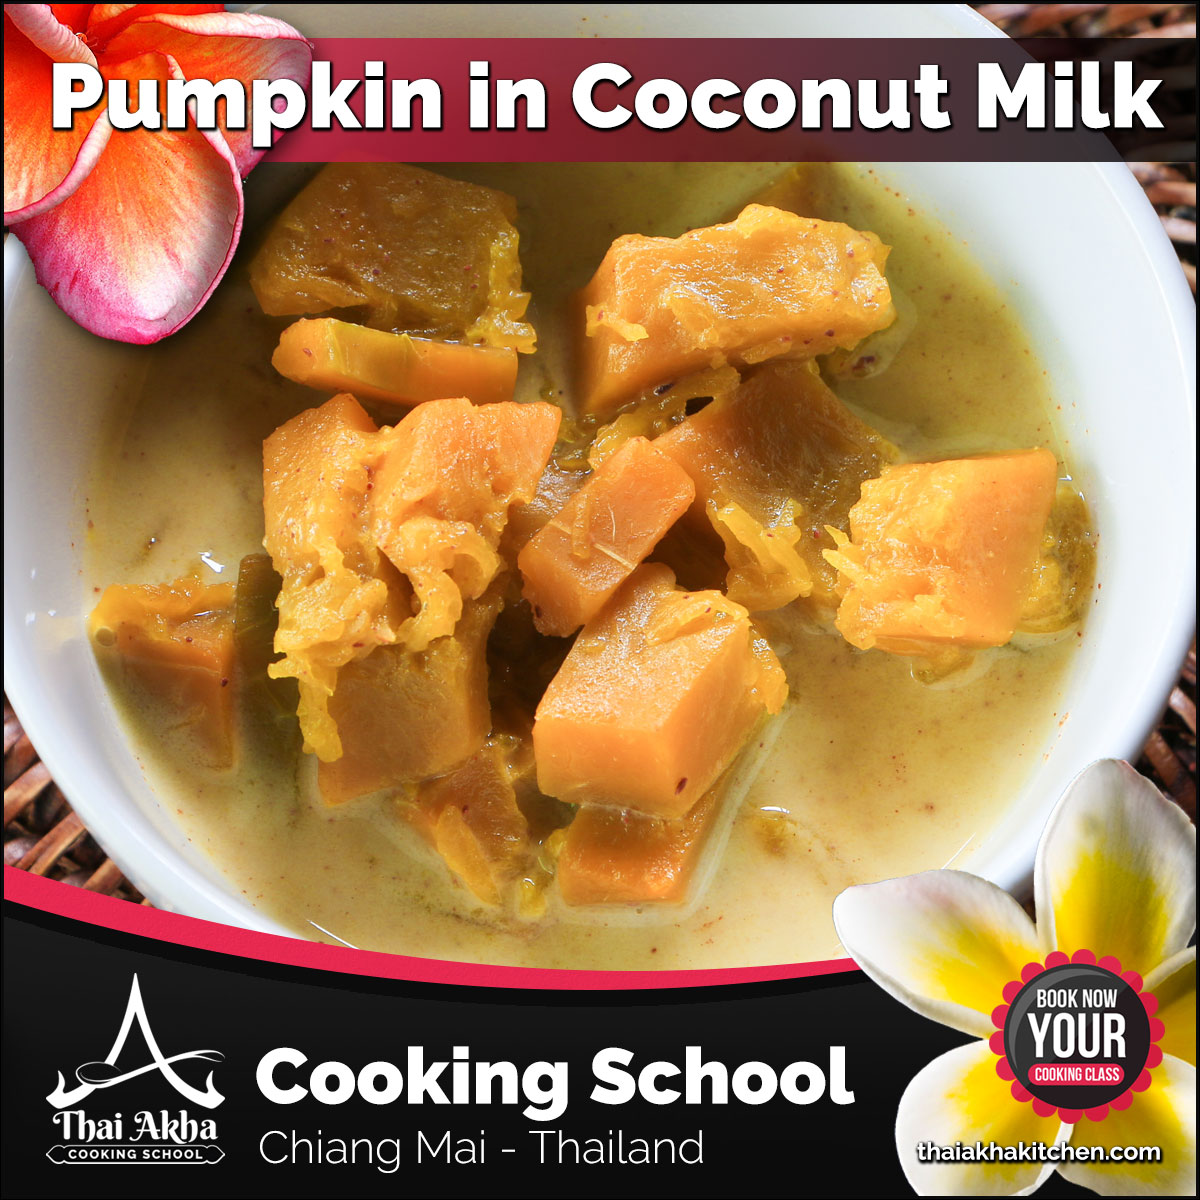 Pumpkin in Coconut Milk - Thai Akha Kitchen